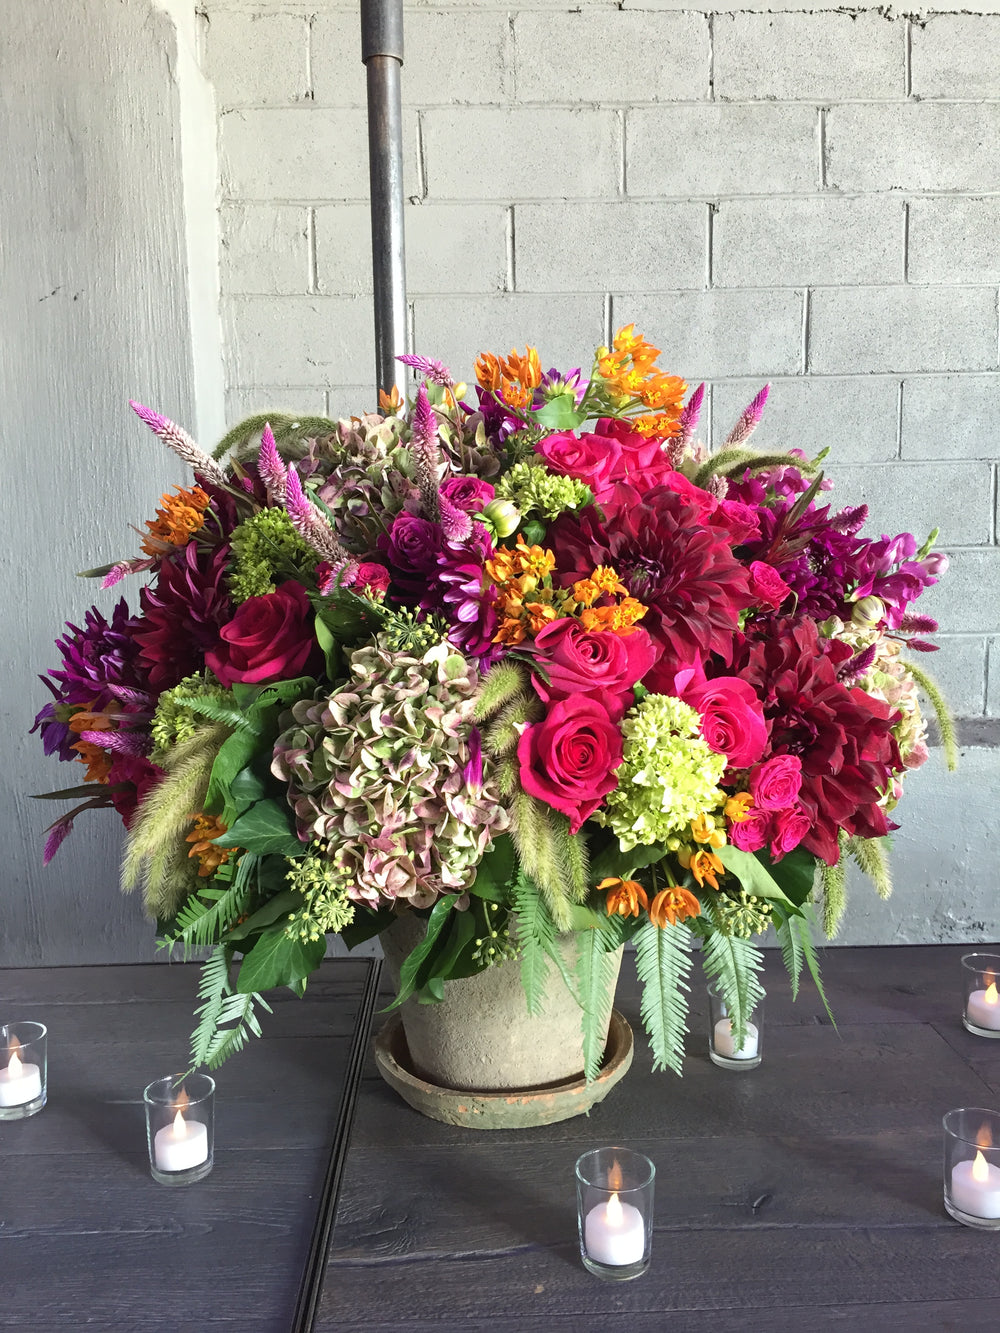 Rustic Event Centerpieces NYC Highline Event Space by Anissa Rae Flowers